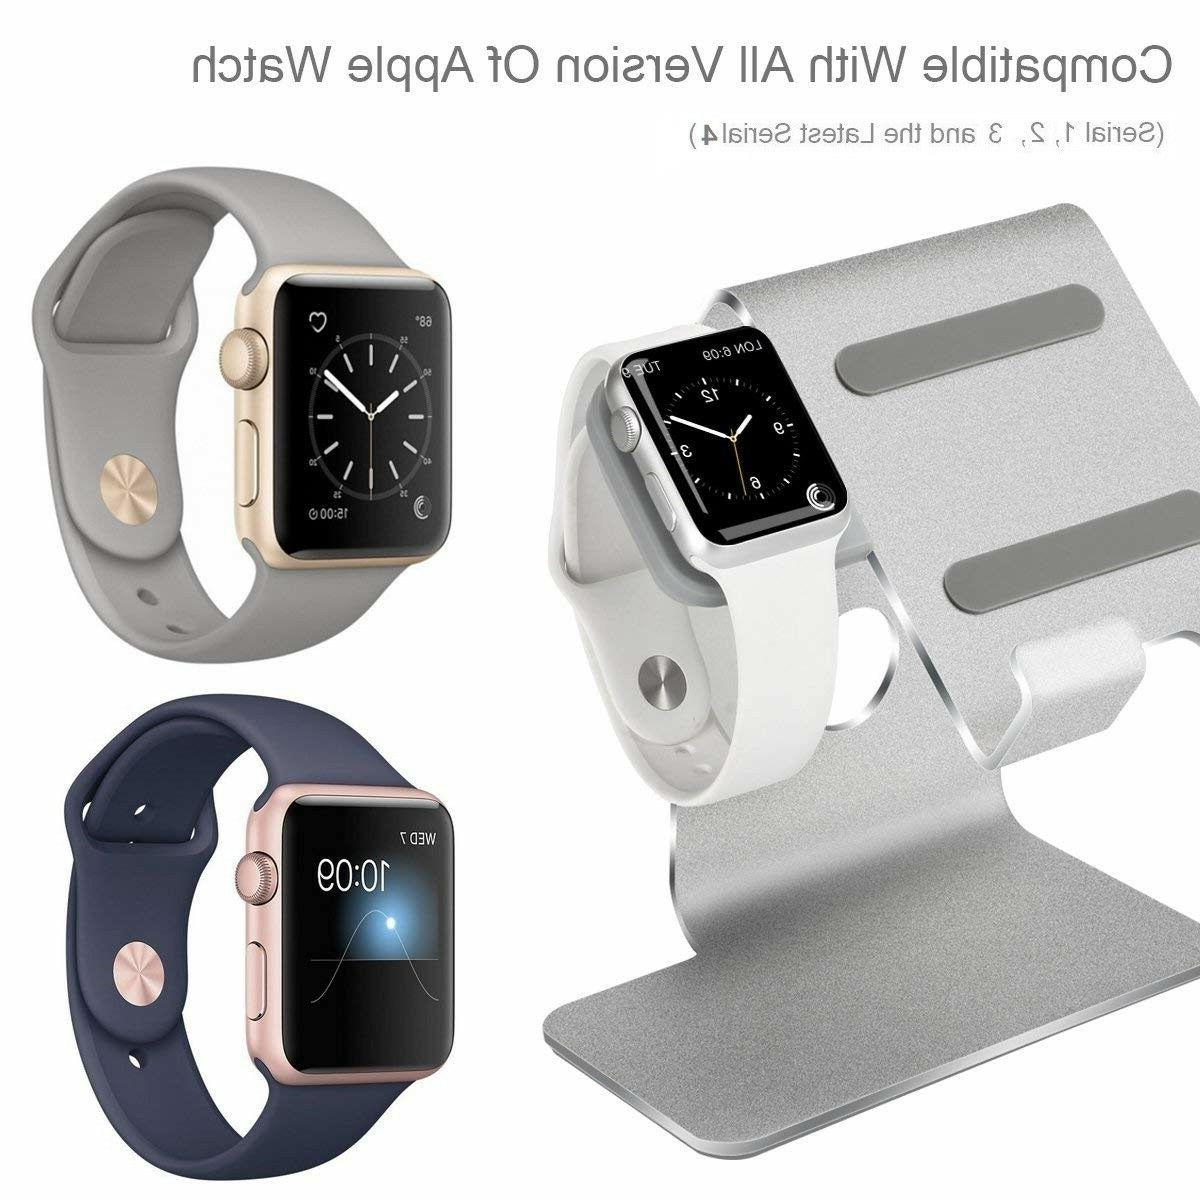 iPHONE IPAD Watch in 1 station desk Holder